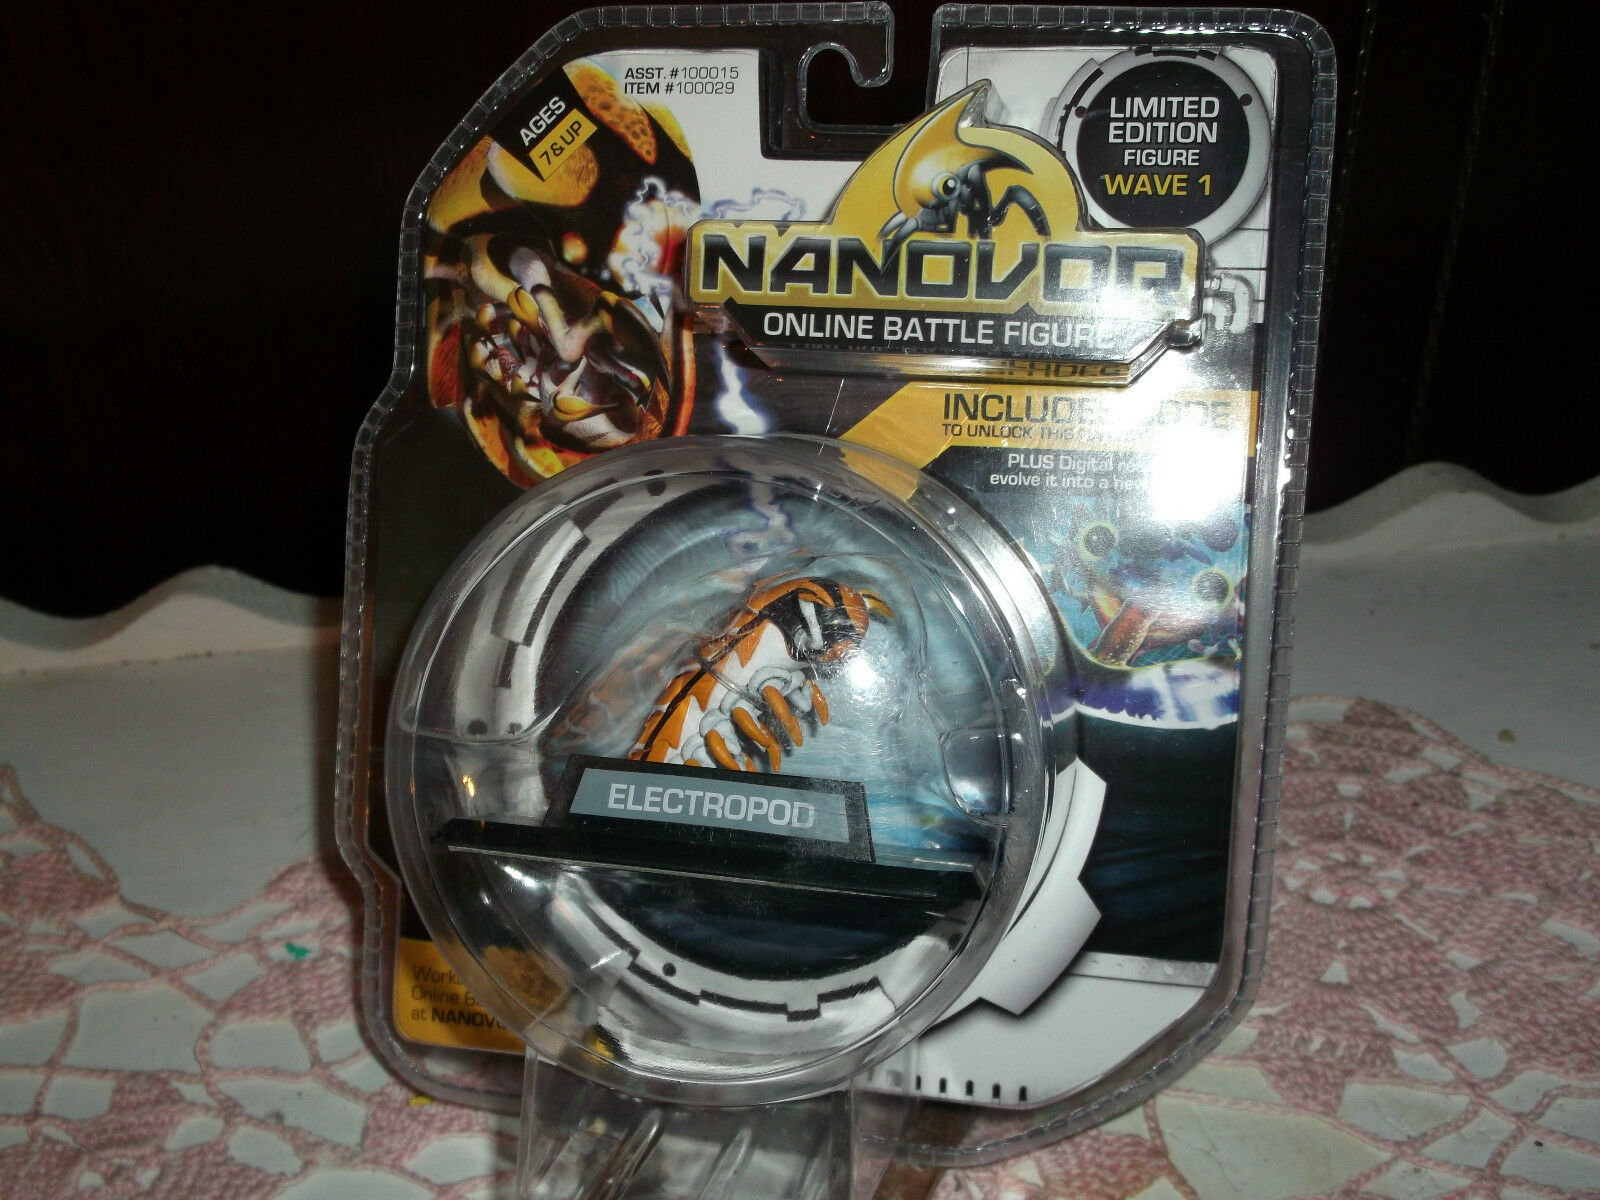 Nanover Online Battle Figure ELECTROPOD Wave 1 Unused & Unopened